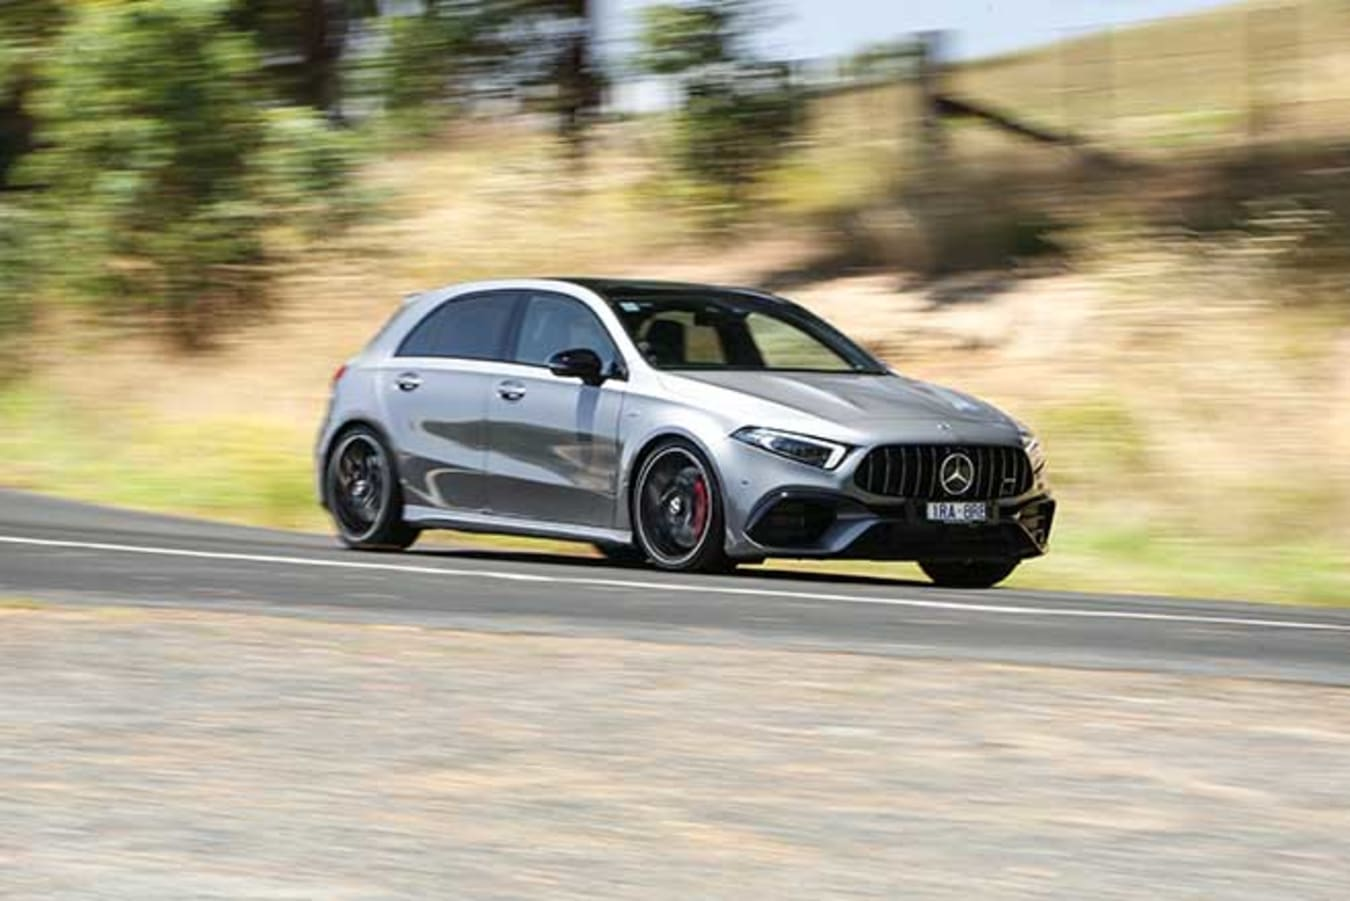 The A45 uses launch control to hit 100km/h in 3.9sec